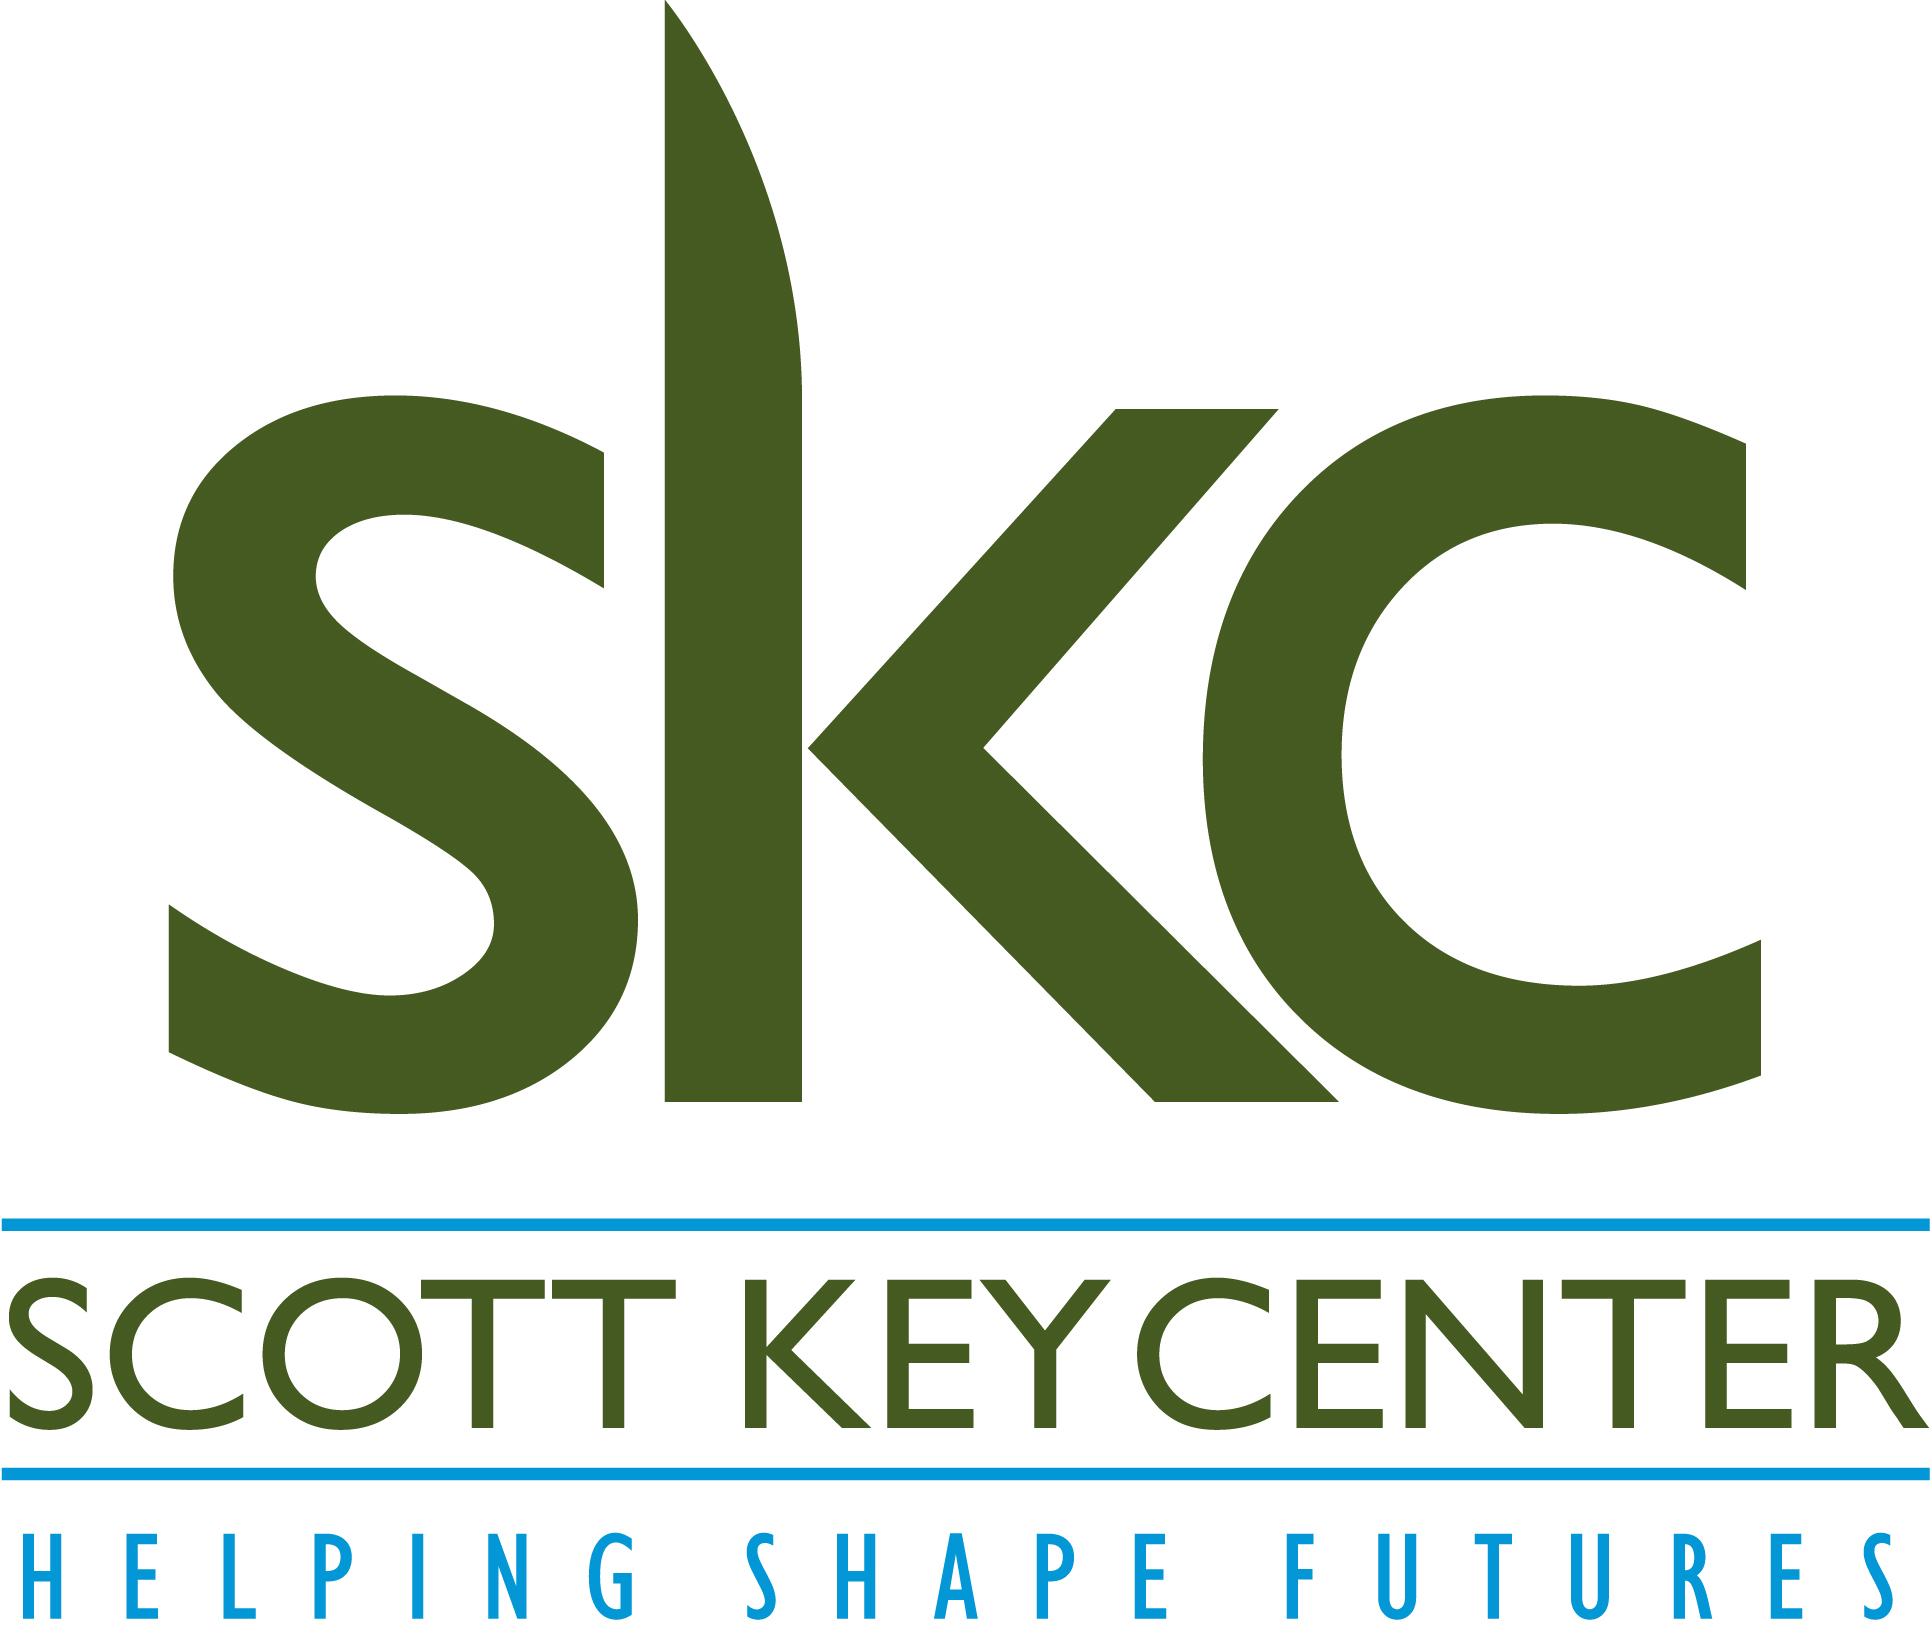 Scott Key Center logo